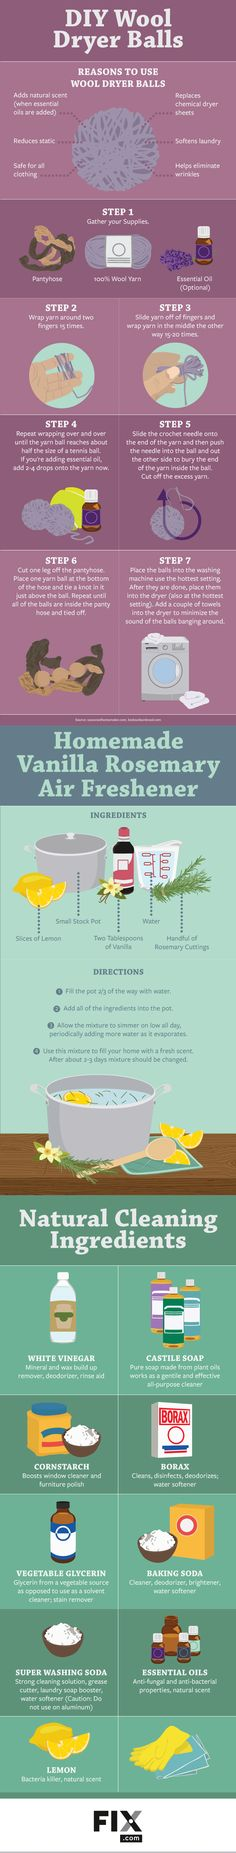 These DIY natural cleaning solutions offer a green alternative to your household cleaners.